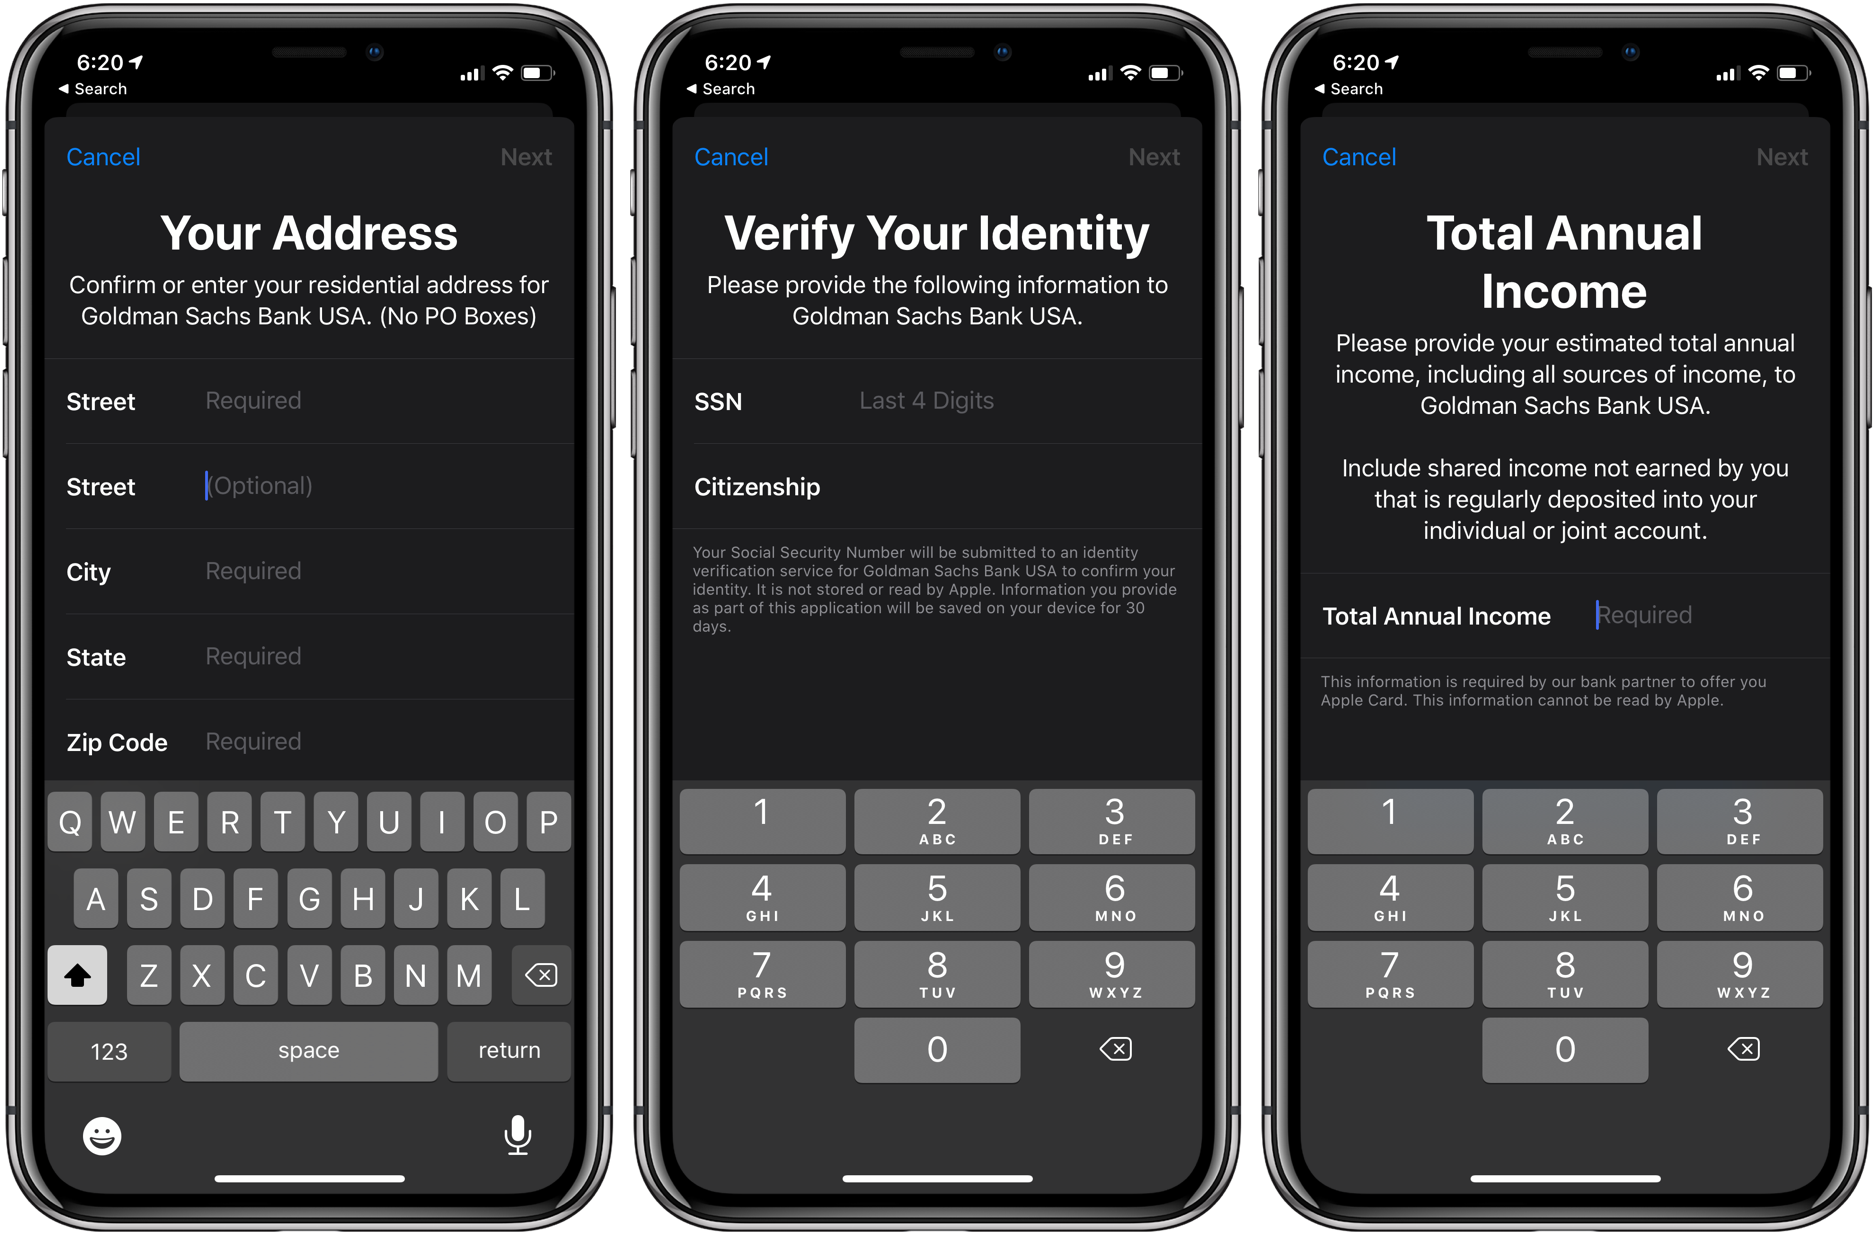 How to apply for Apple Card walkthrough 2